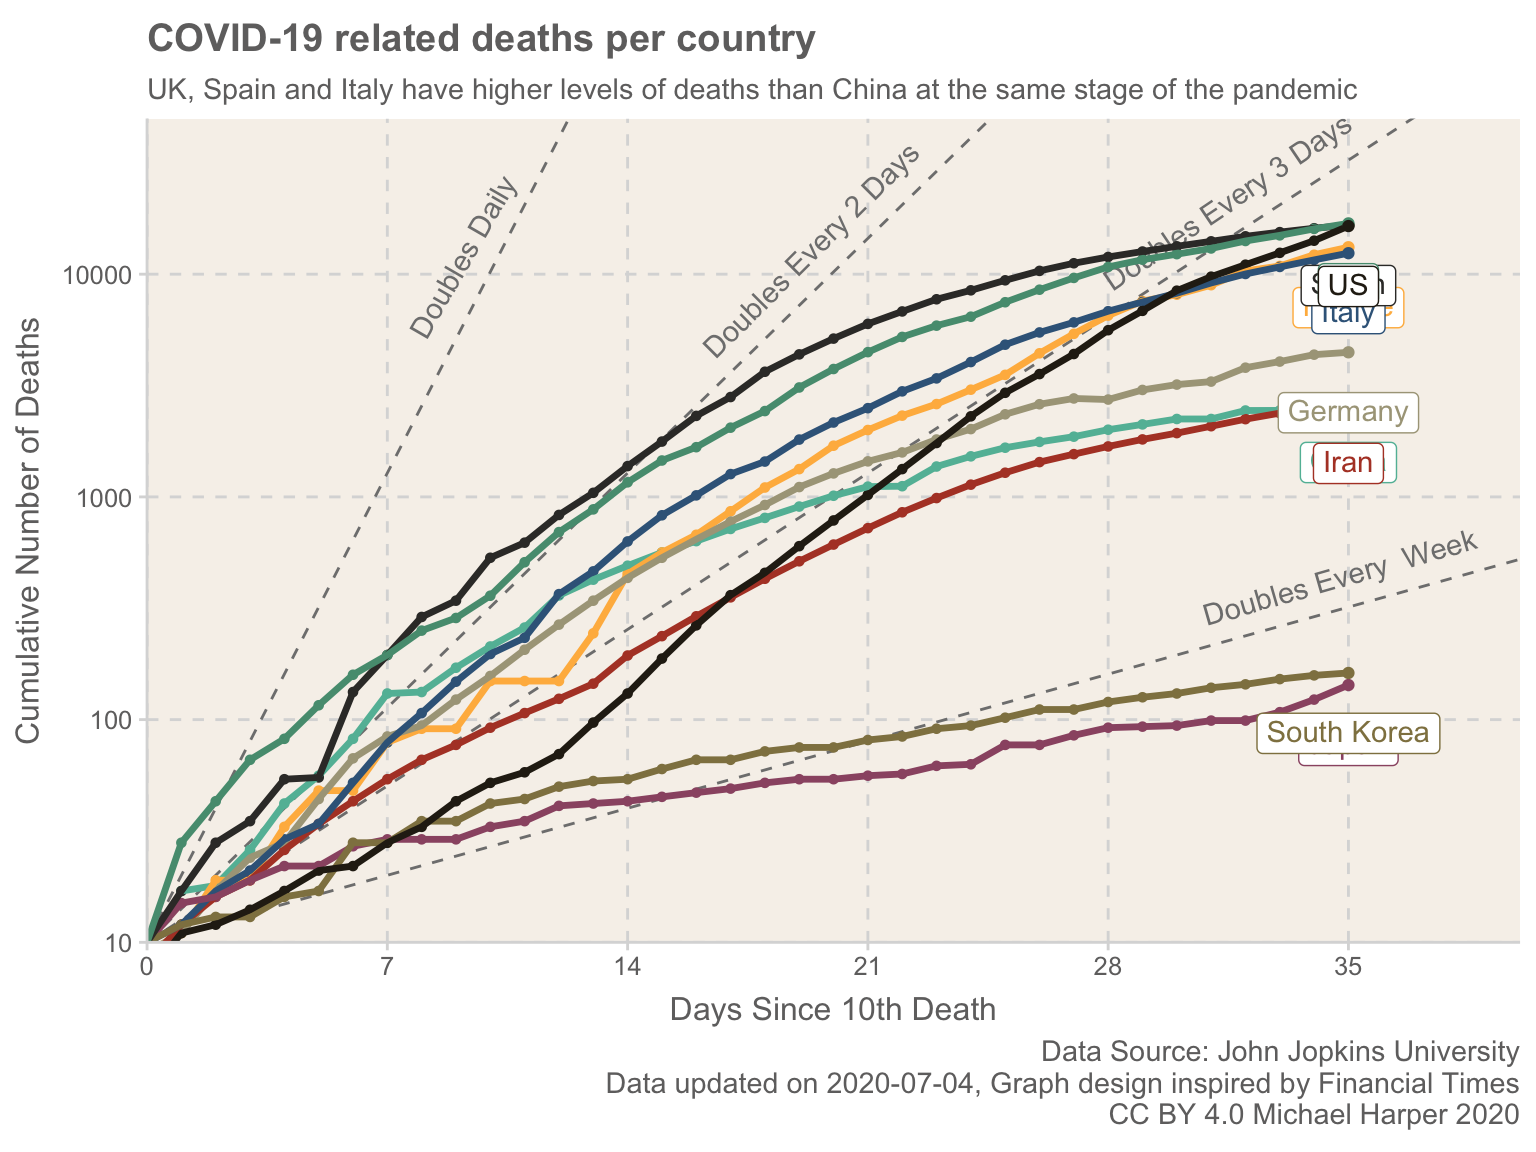 Cumulative number of deaths plotted for the key countries frequently used in discussions, compared against dates since outbreaks